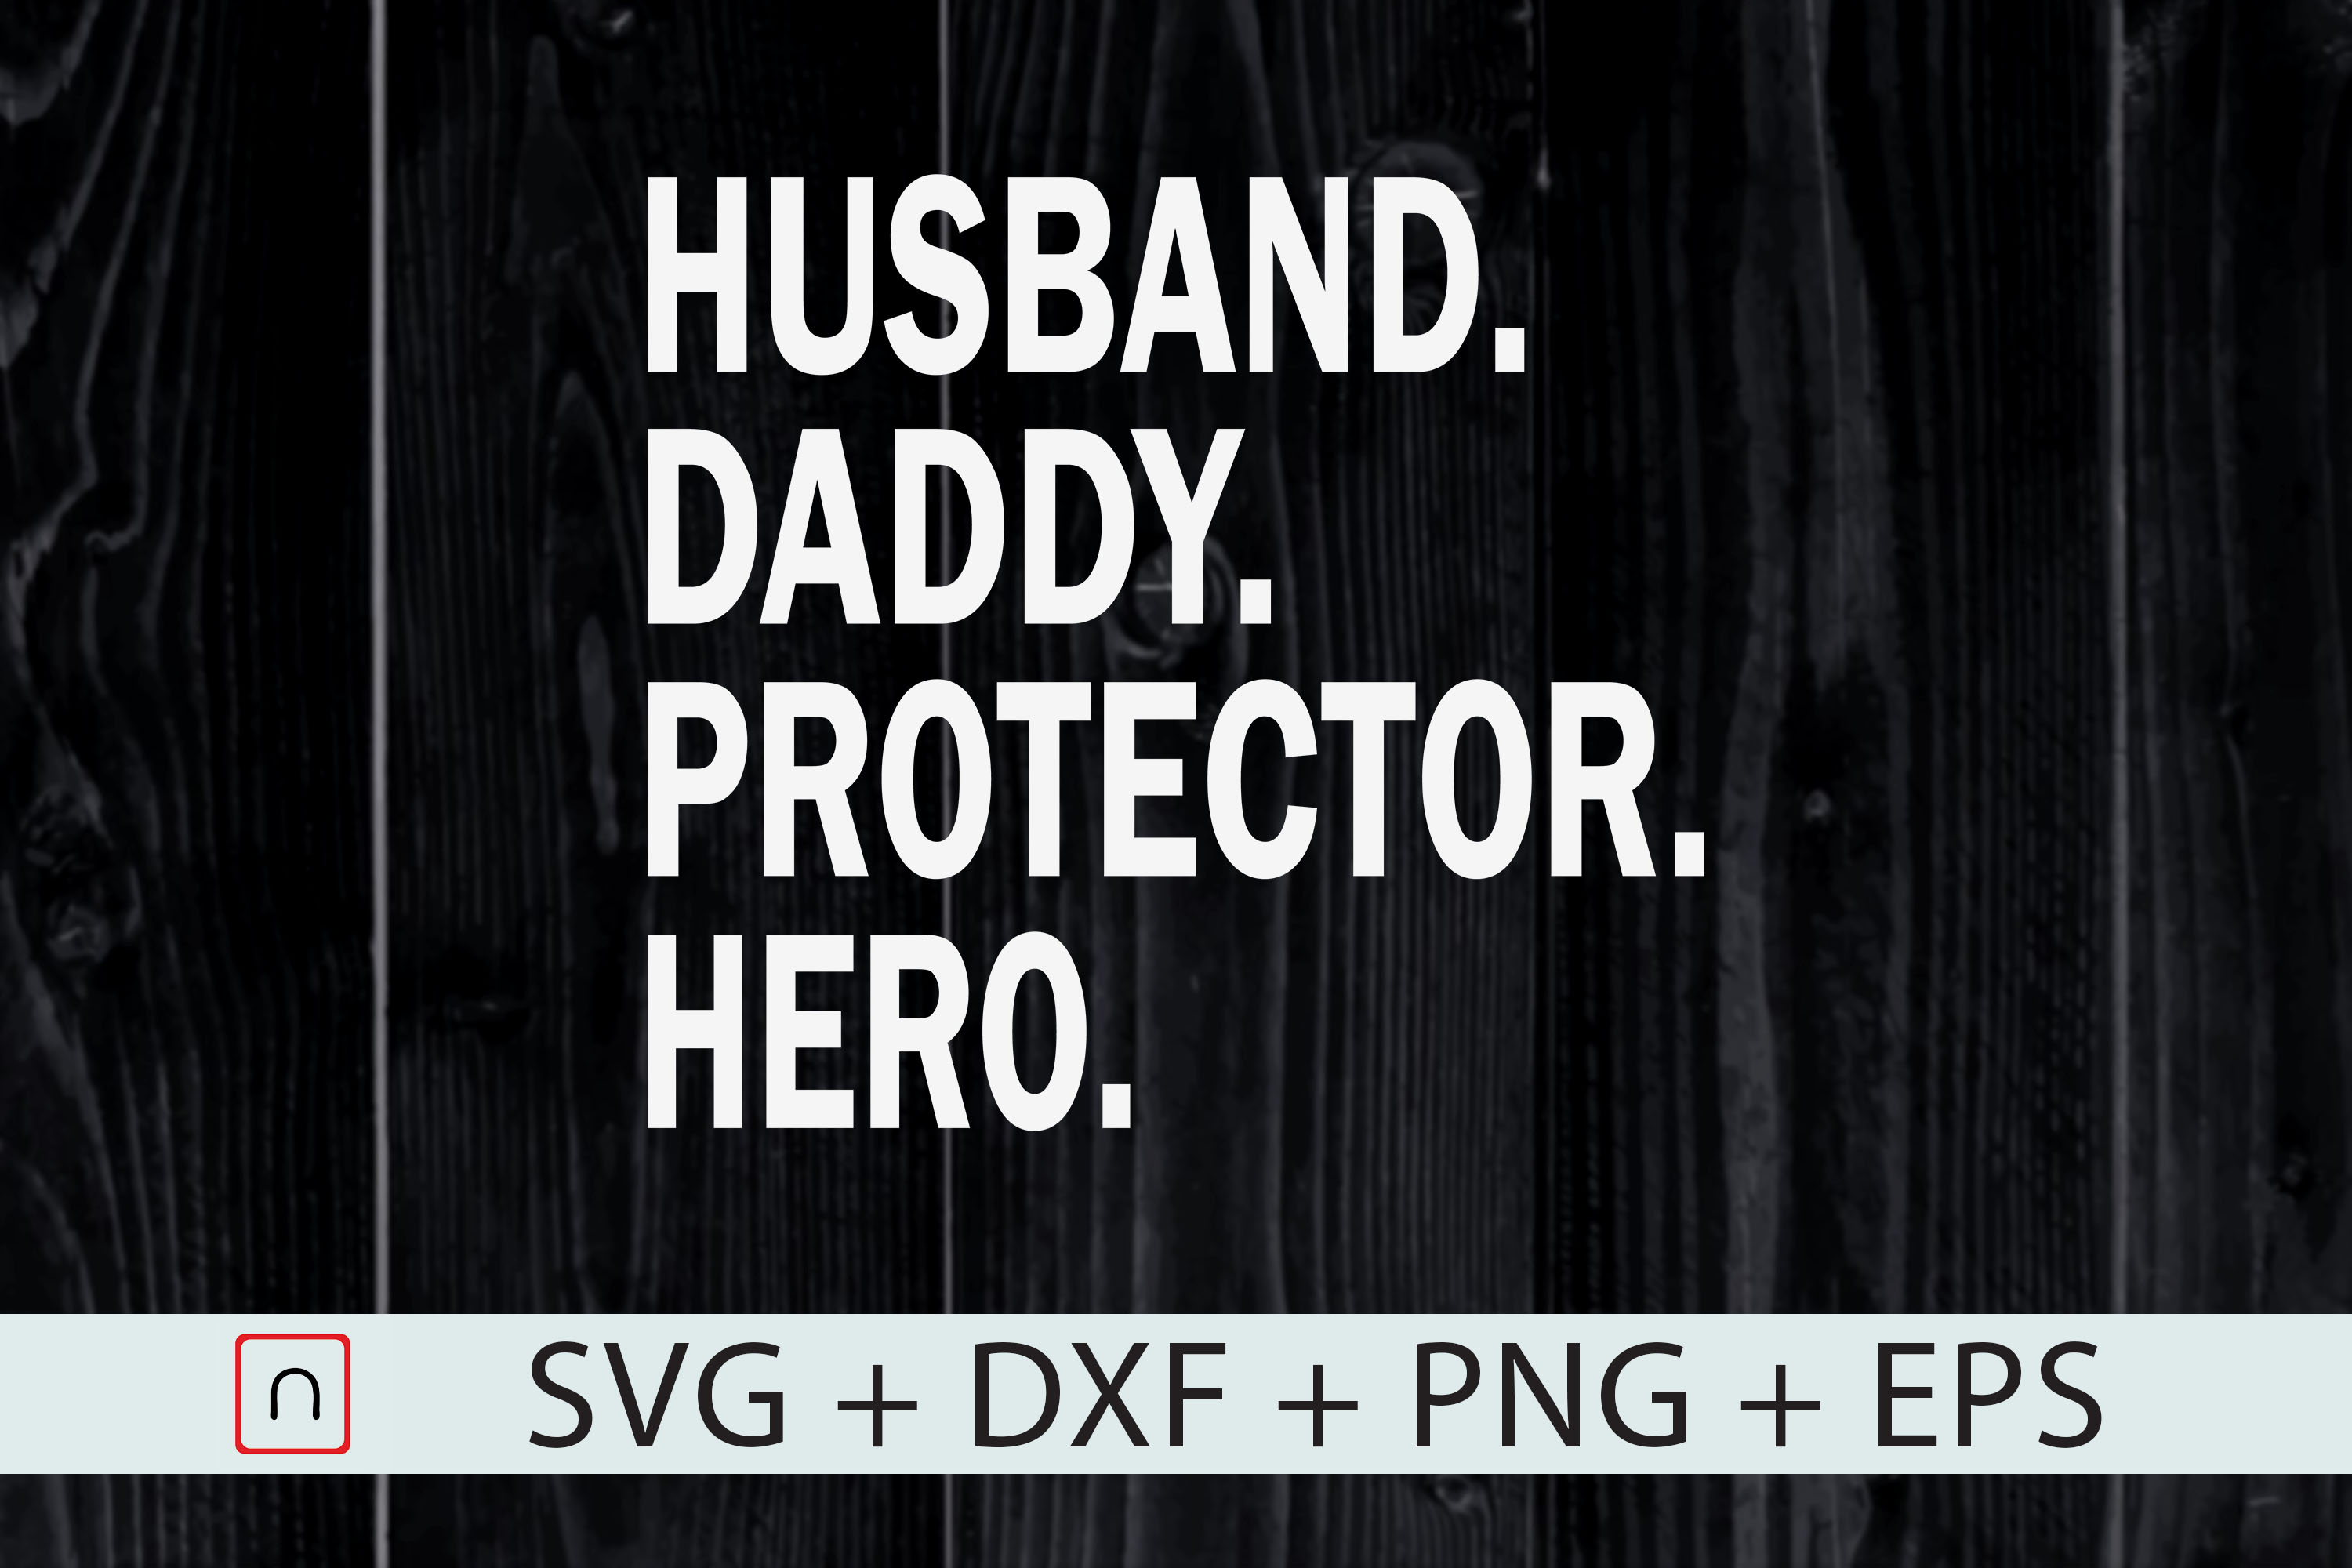 Download Free Husband Daddy Protector Hero Graphic By Novalia Creative for Cricut Explore, Silhouette and other cutting machines.